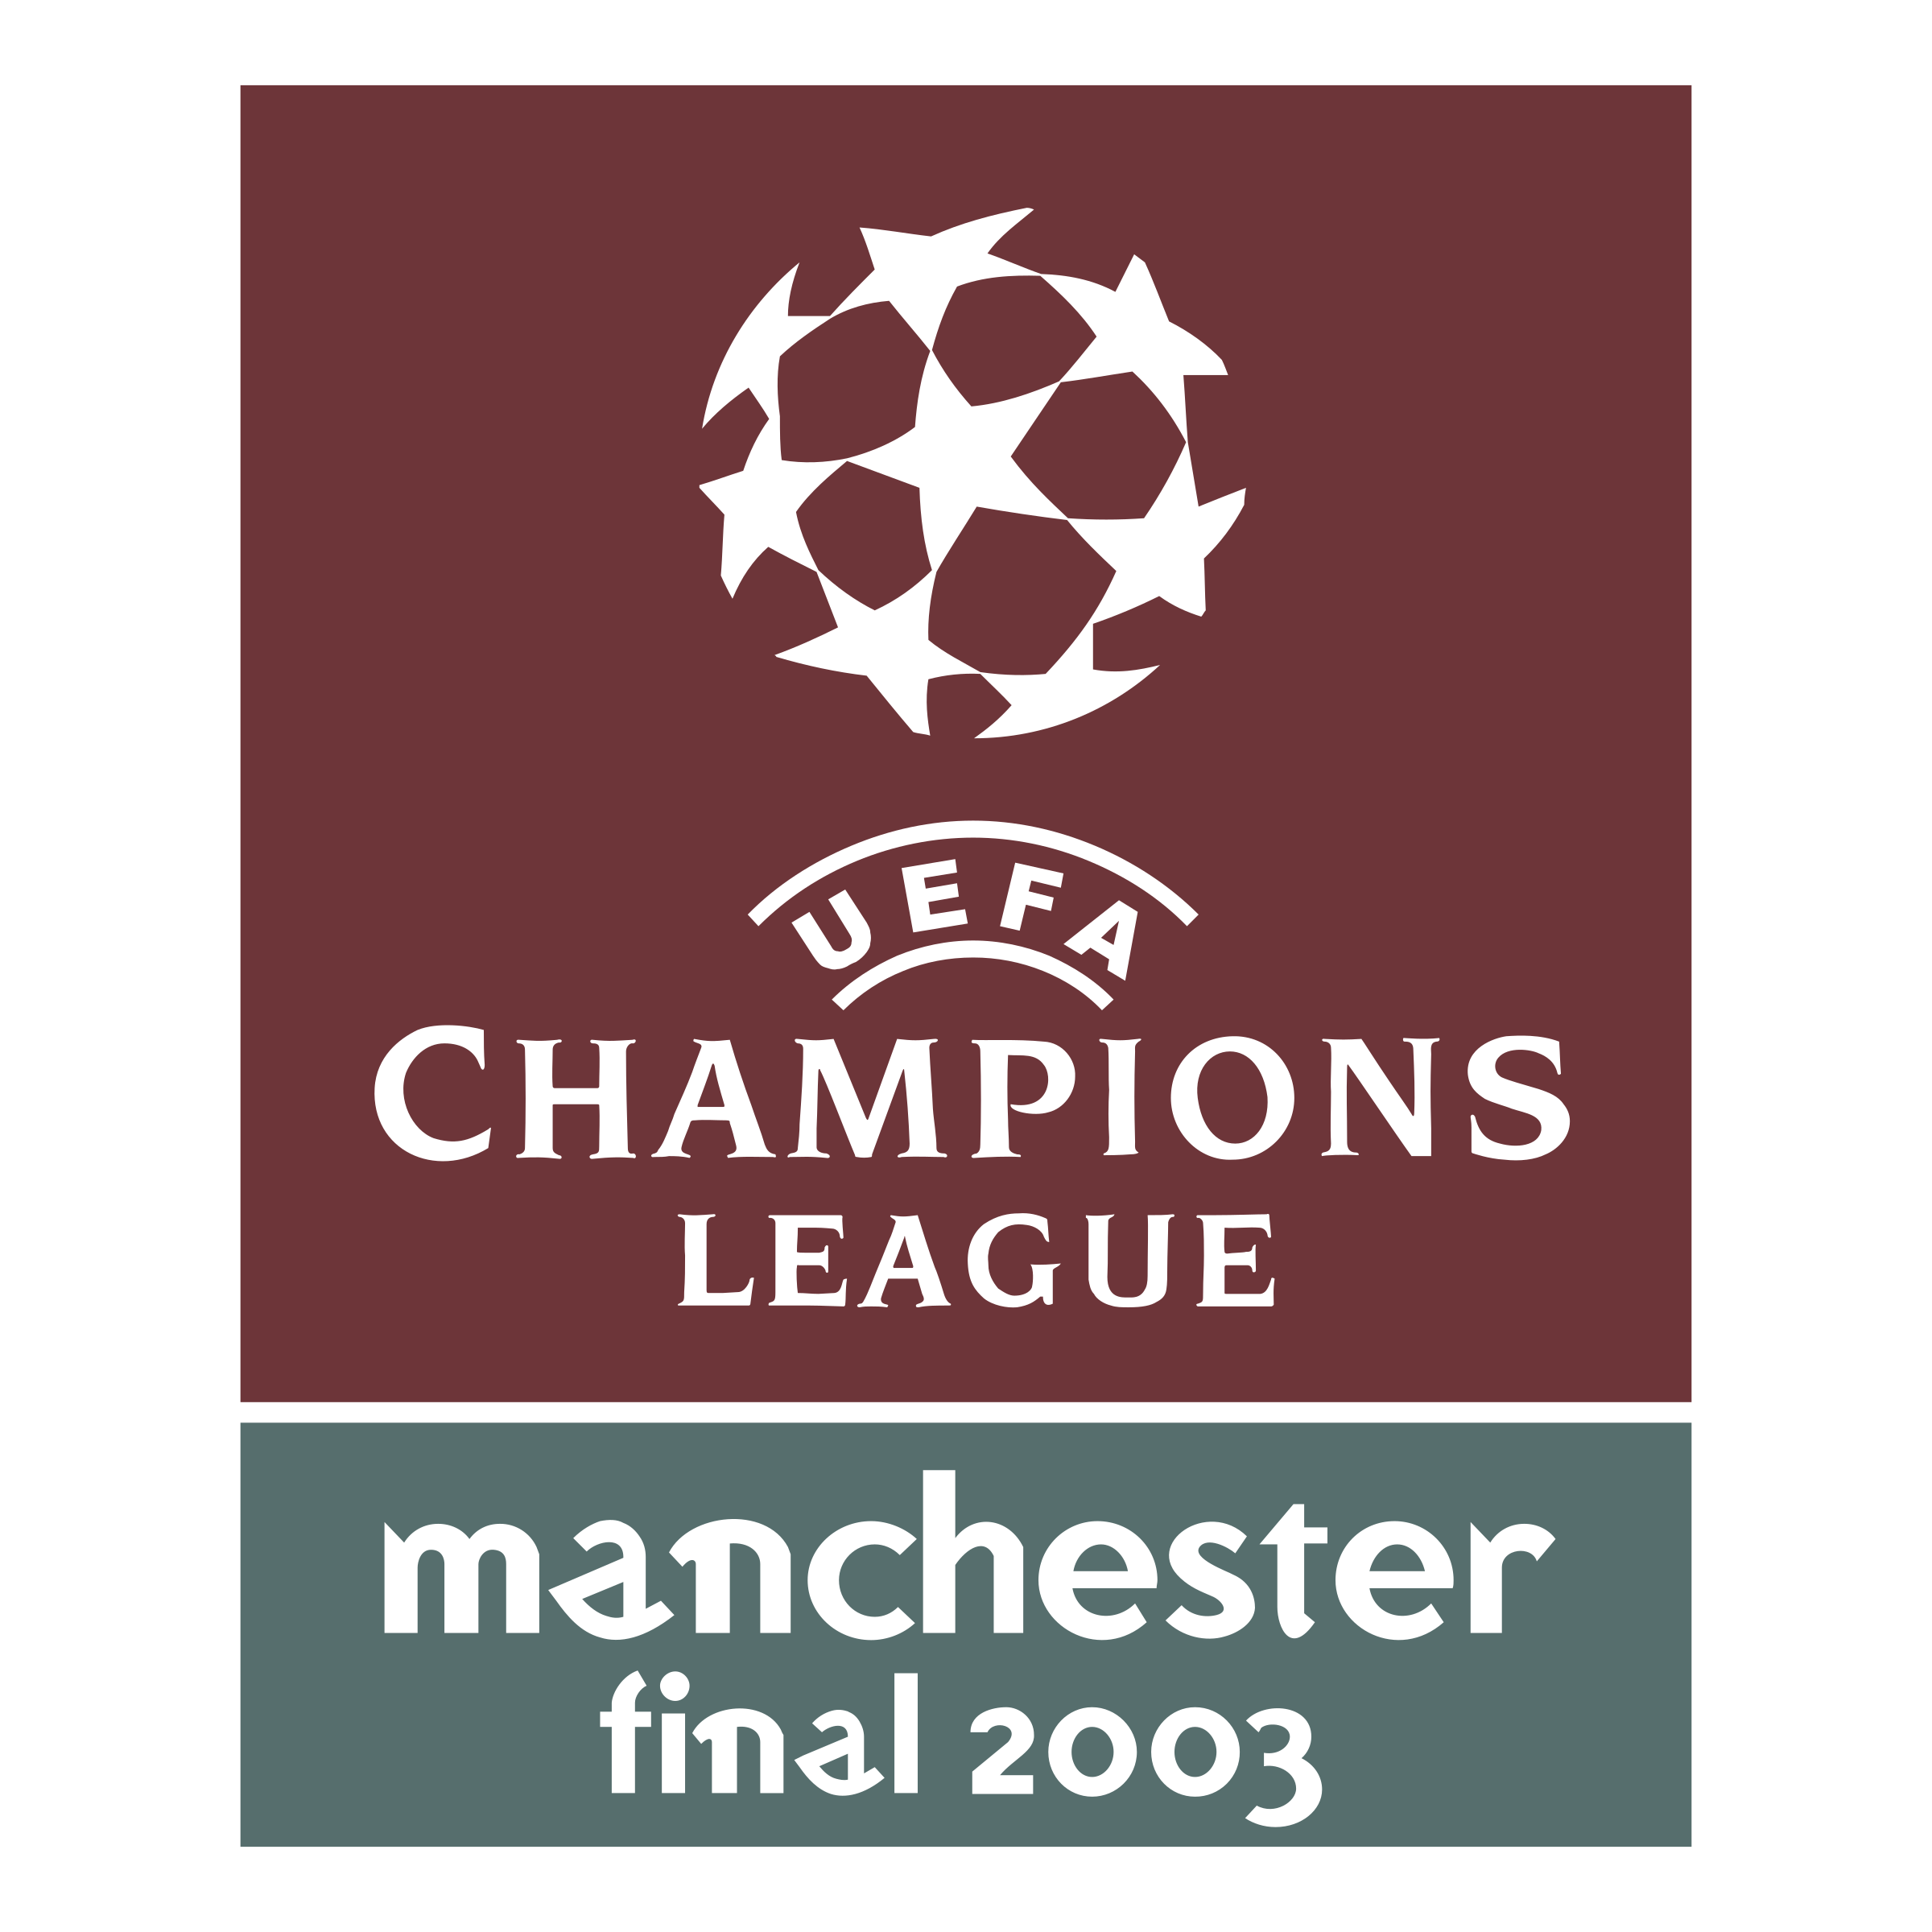 Uefa champions league manchester final 2003 logo png transparent uefa champions league manchester final 2003 logo black and white altavistaventures Gallery